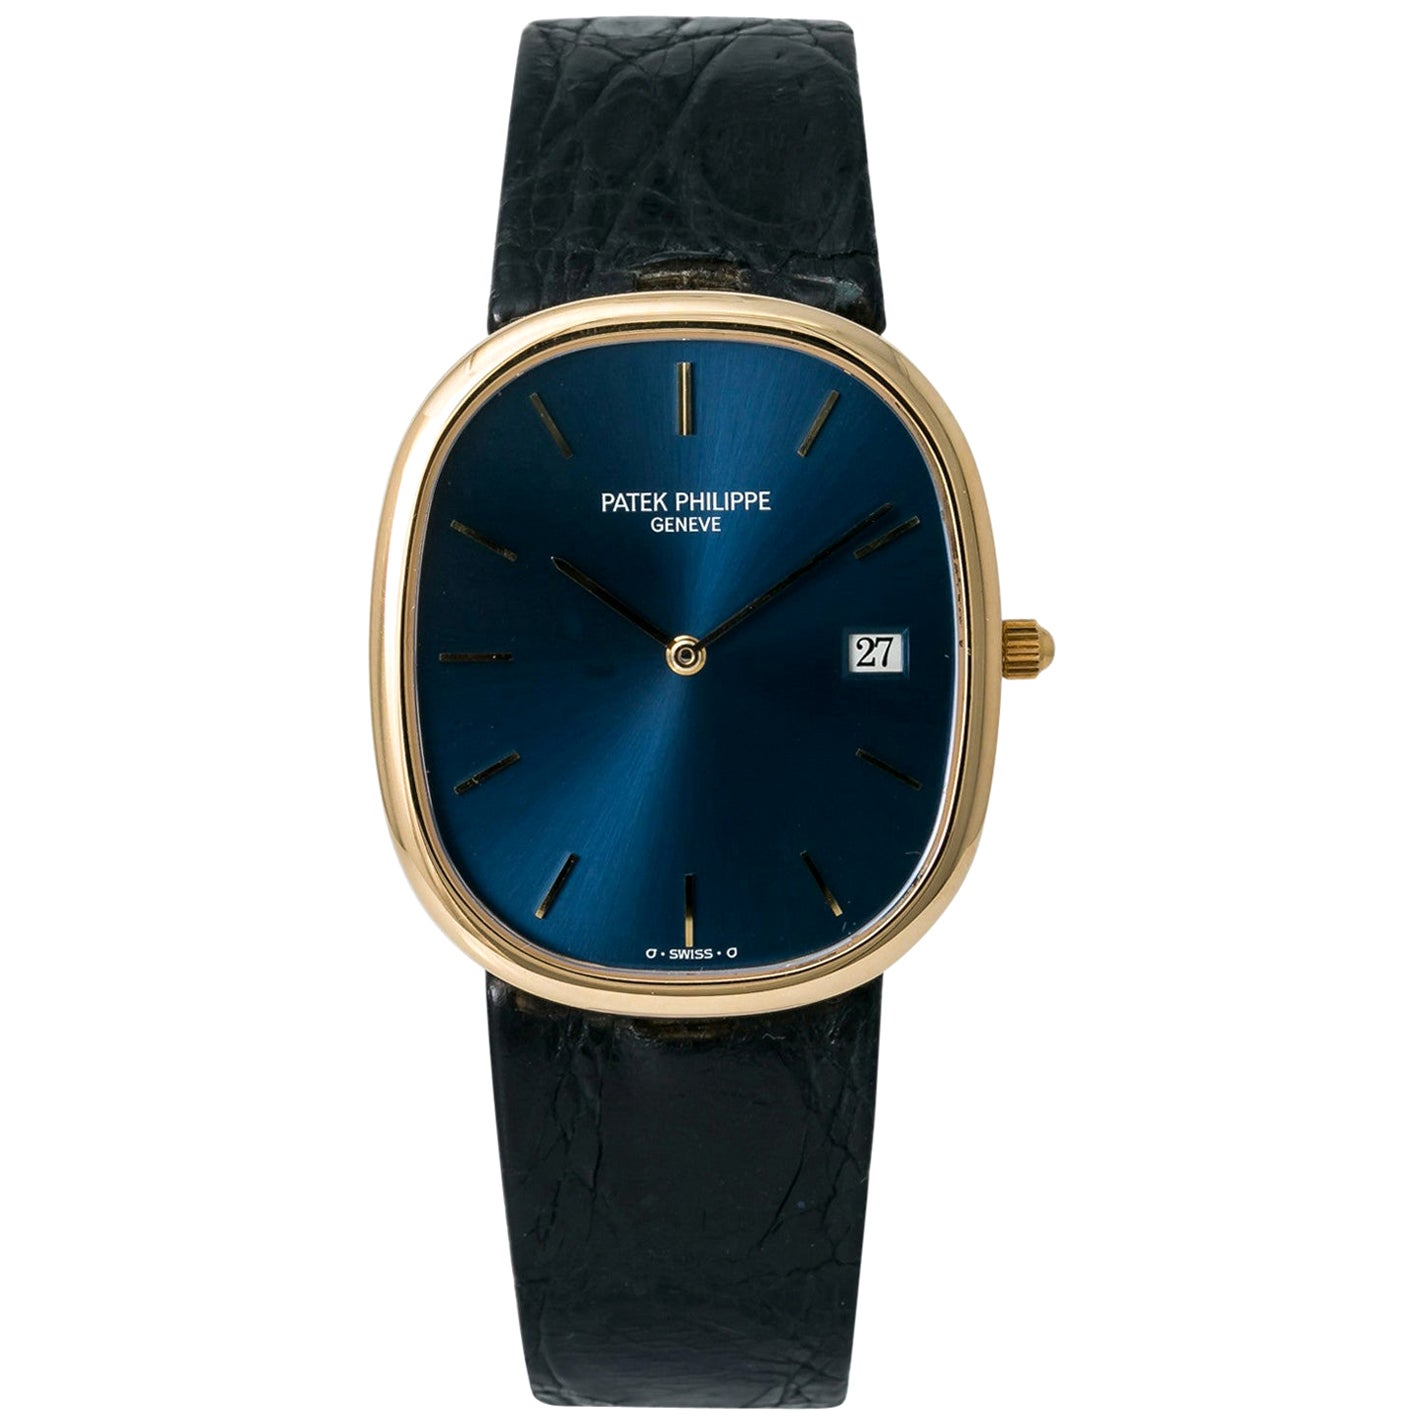 Patek Philippe Golden Ellipse 3747, Blue Dial, Certified